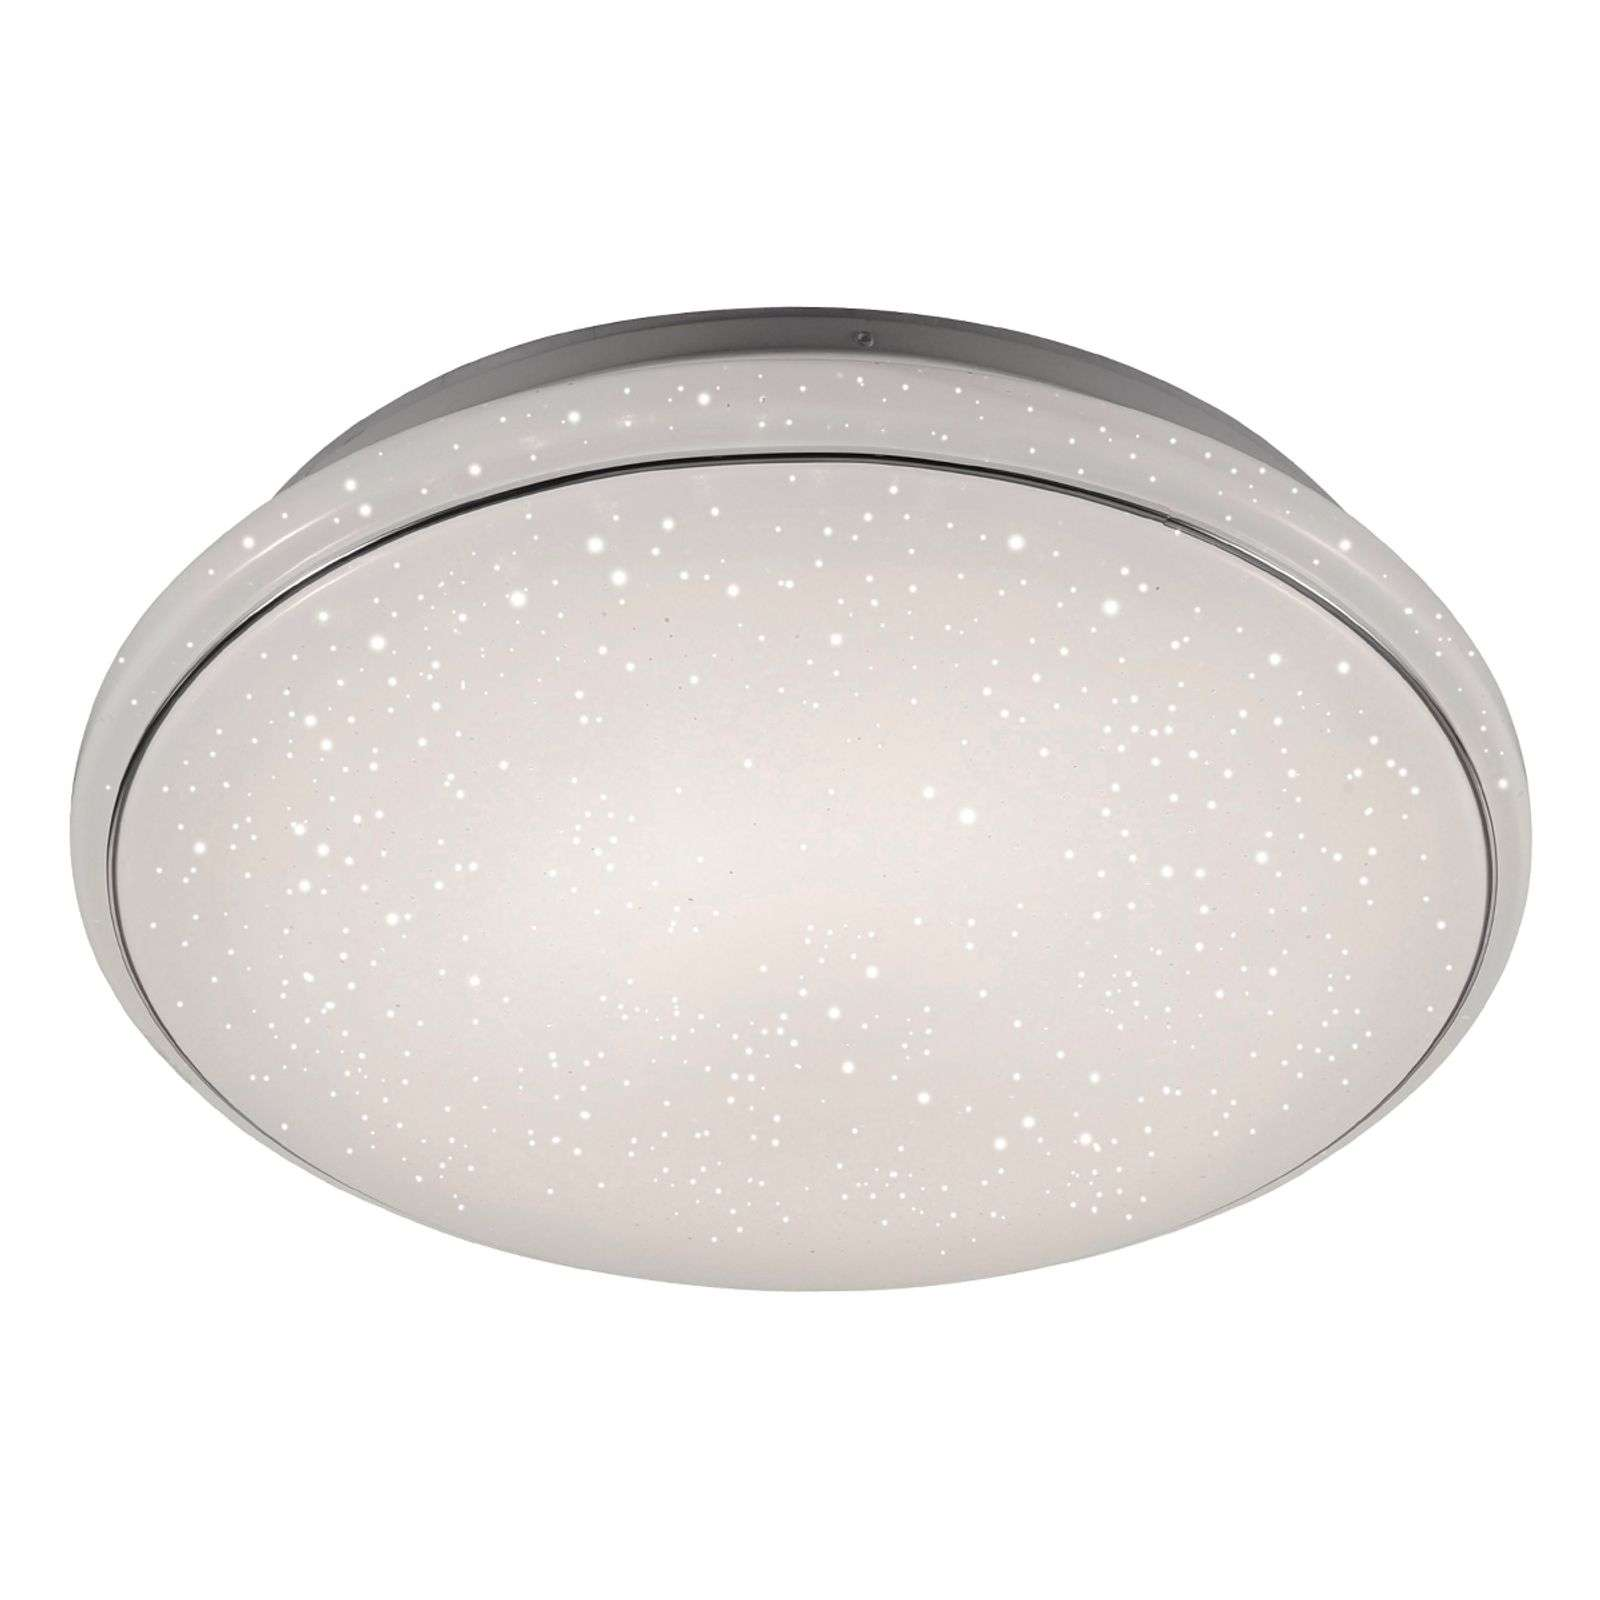 Sterrenhemel look - LED-plafondlamp Jupiter